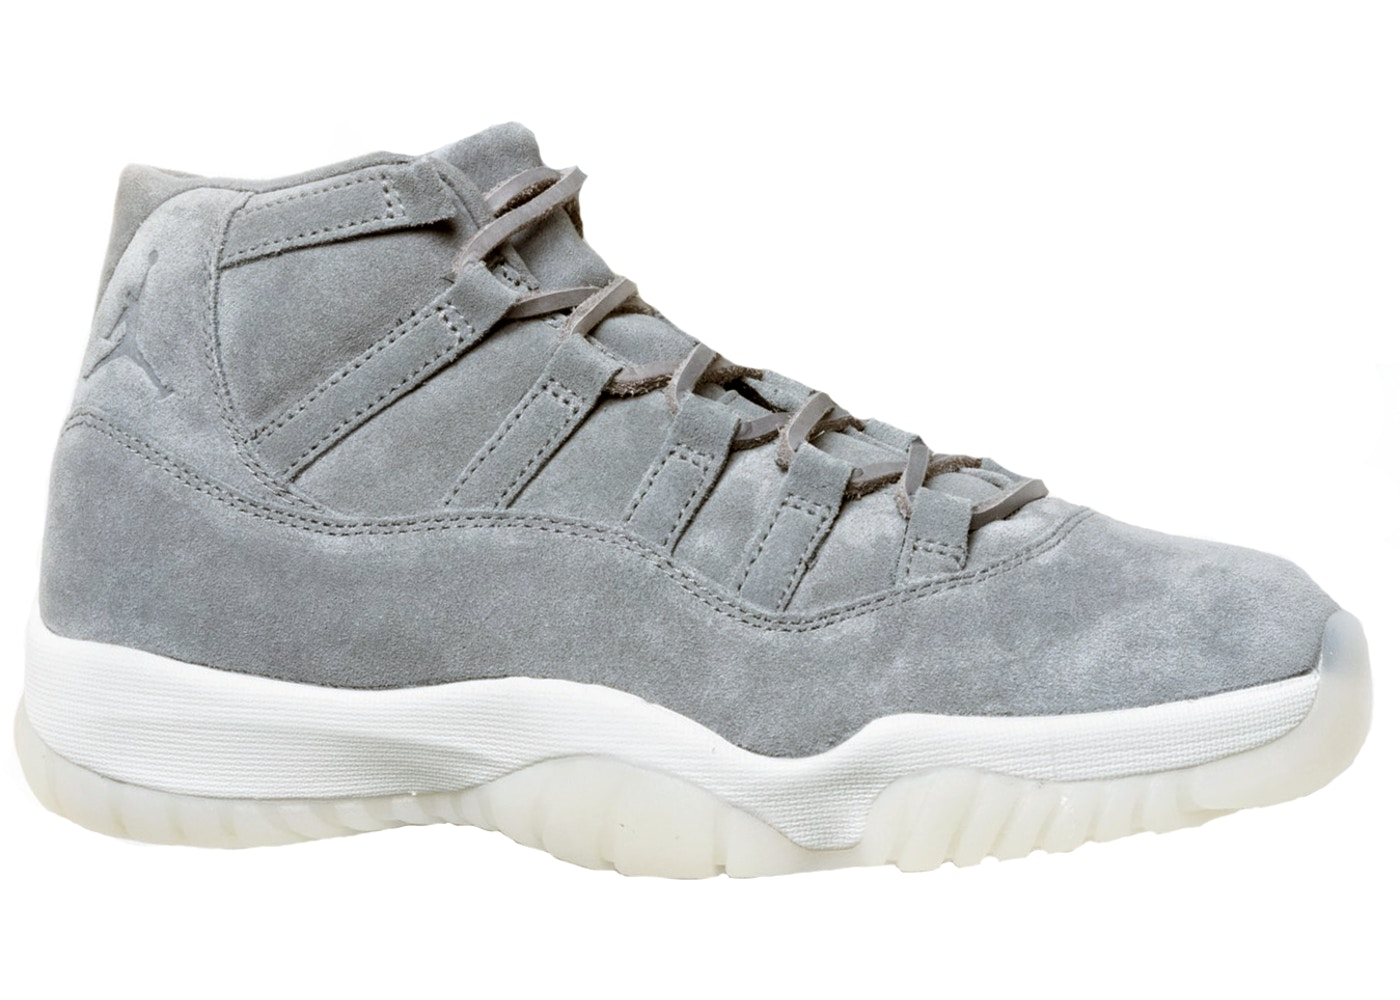 wholesale dealer 46d83 2b00a Jordan 11 Retro Pinnacle Grey Suede